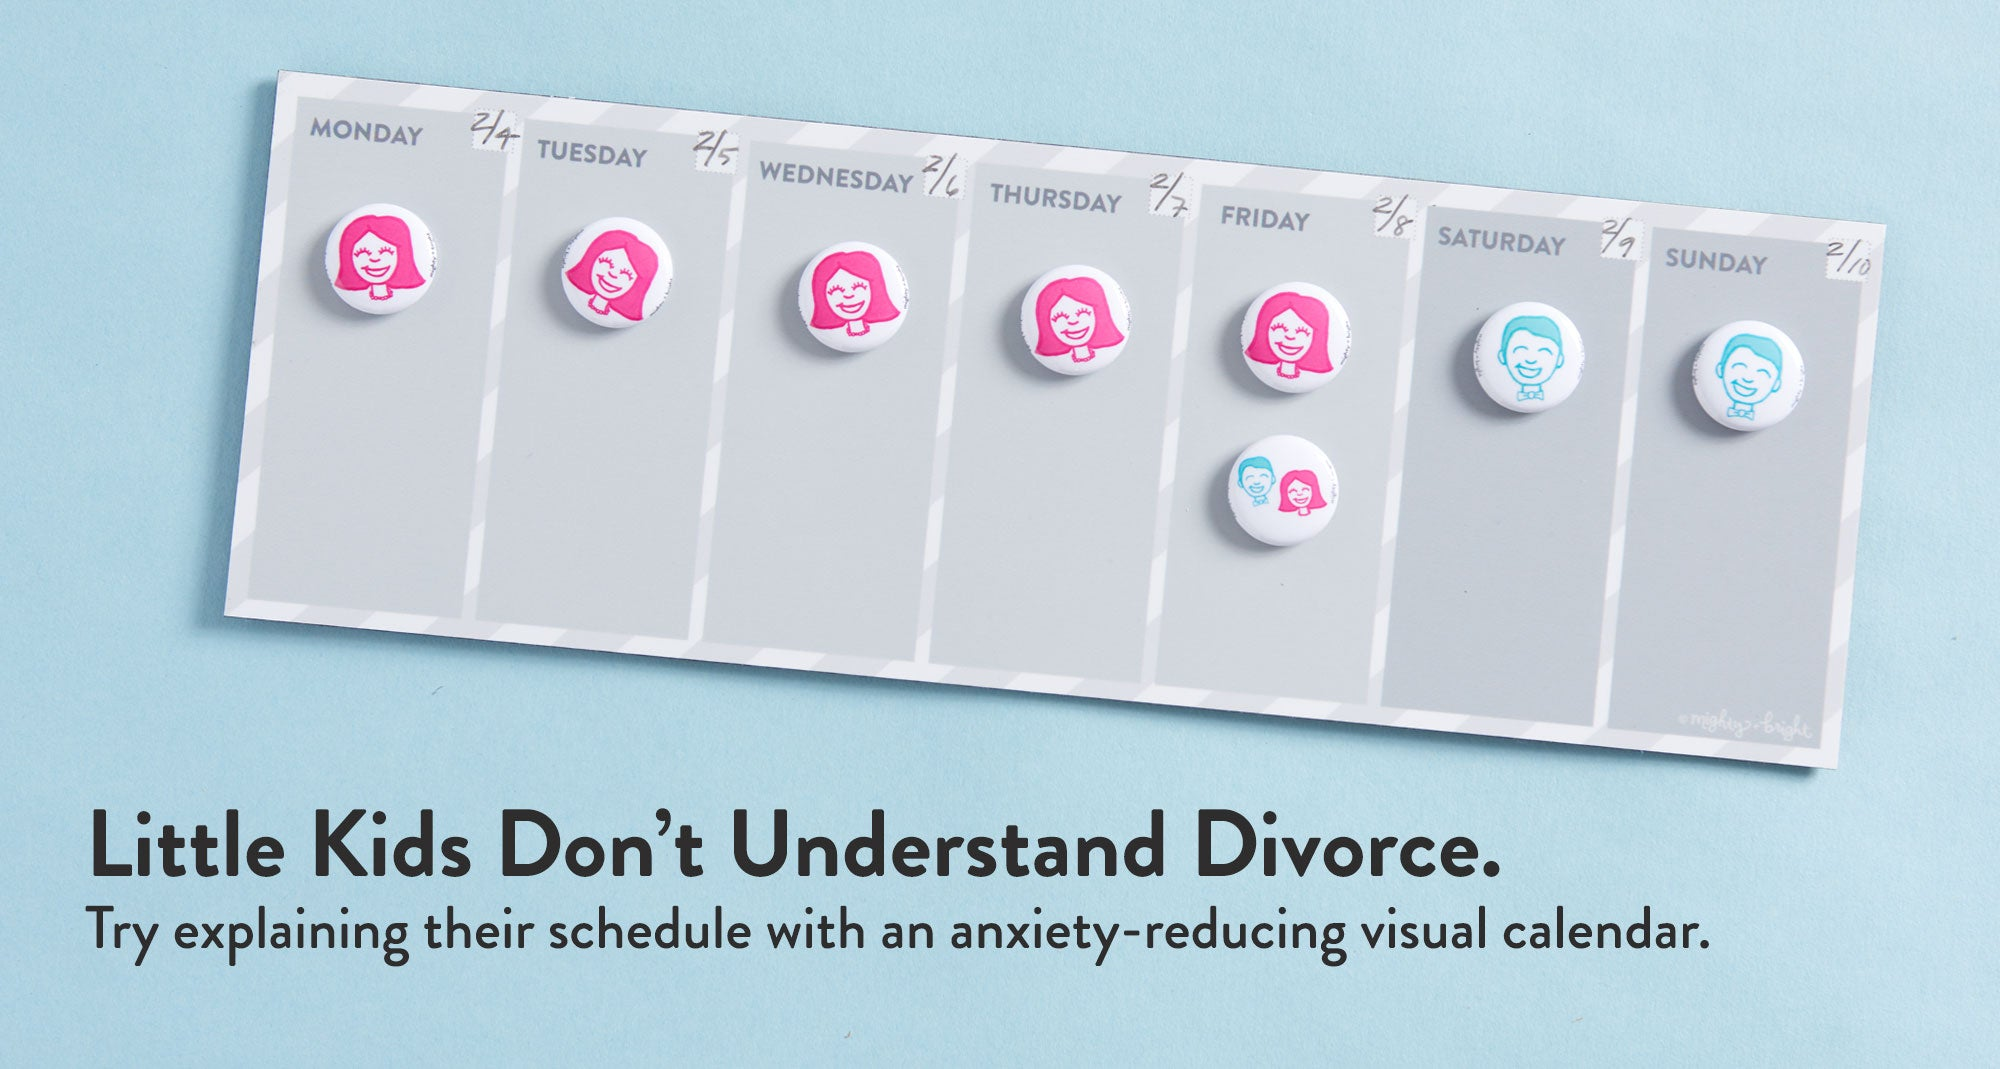 Try explaining their custody schedule with an anxiety-reducing visual calendar.